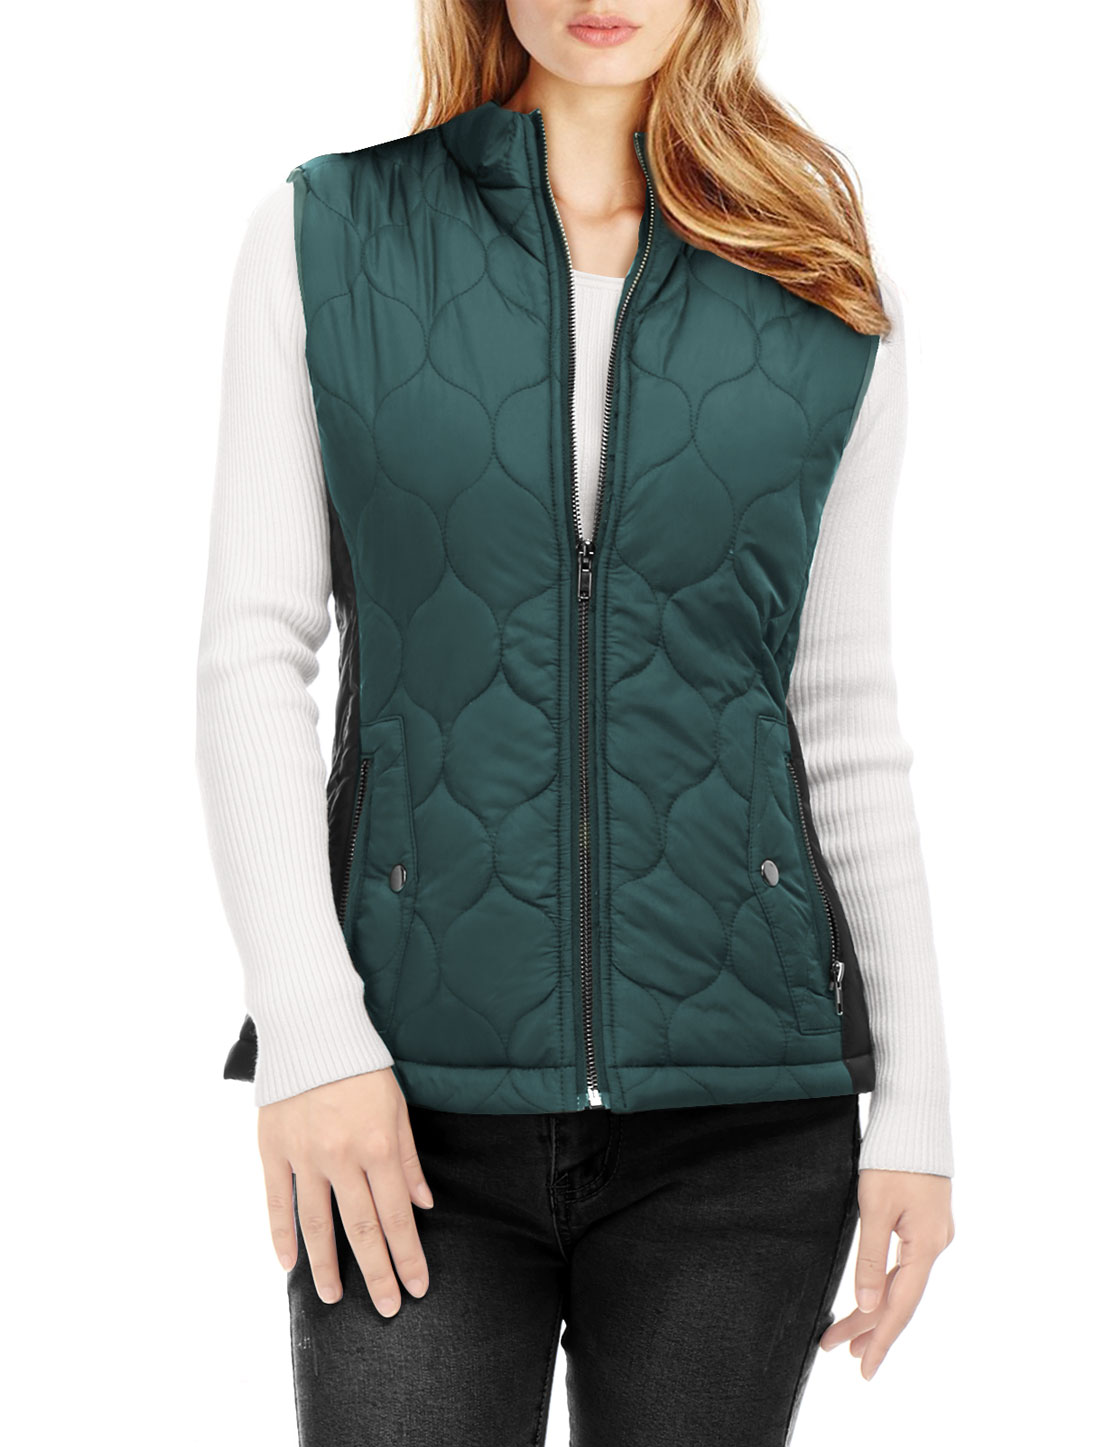 Women Contrast Color Zip Up Quilted Padded Vest Turquoise L